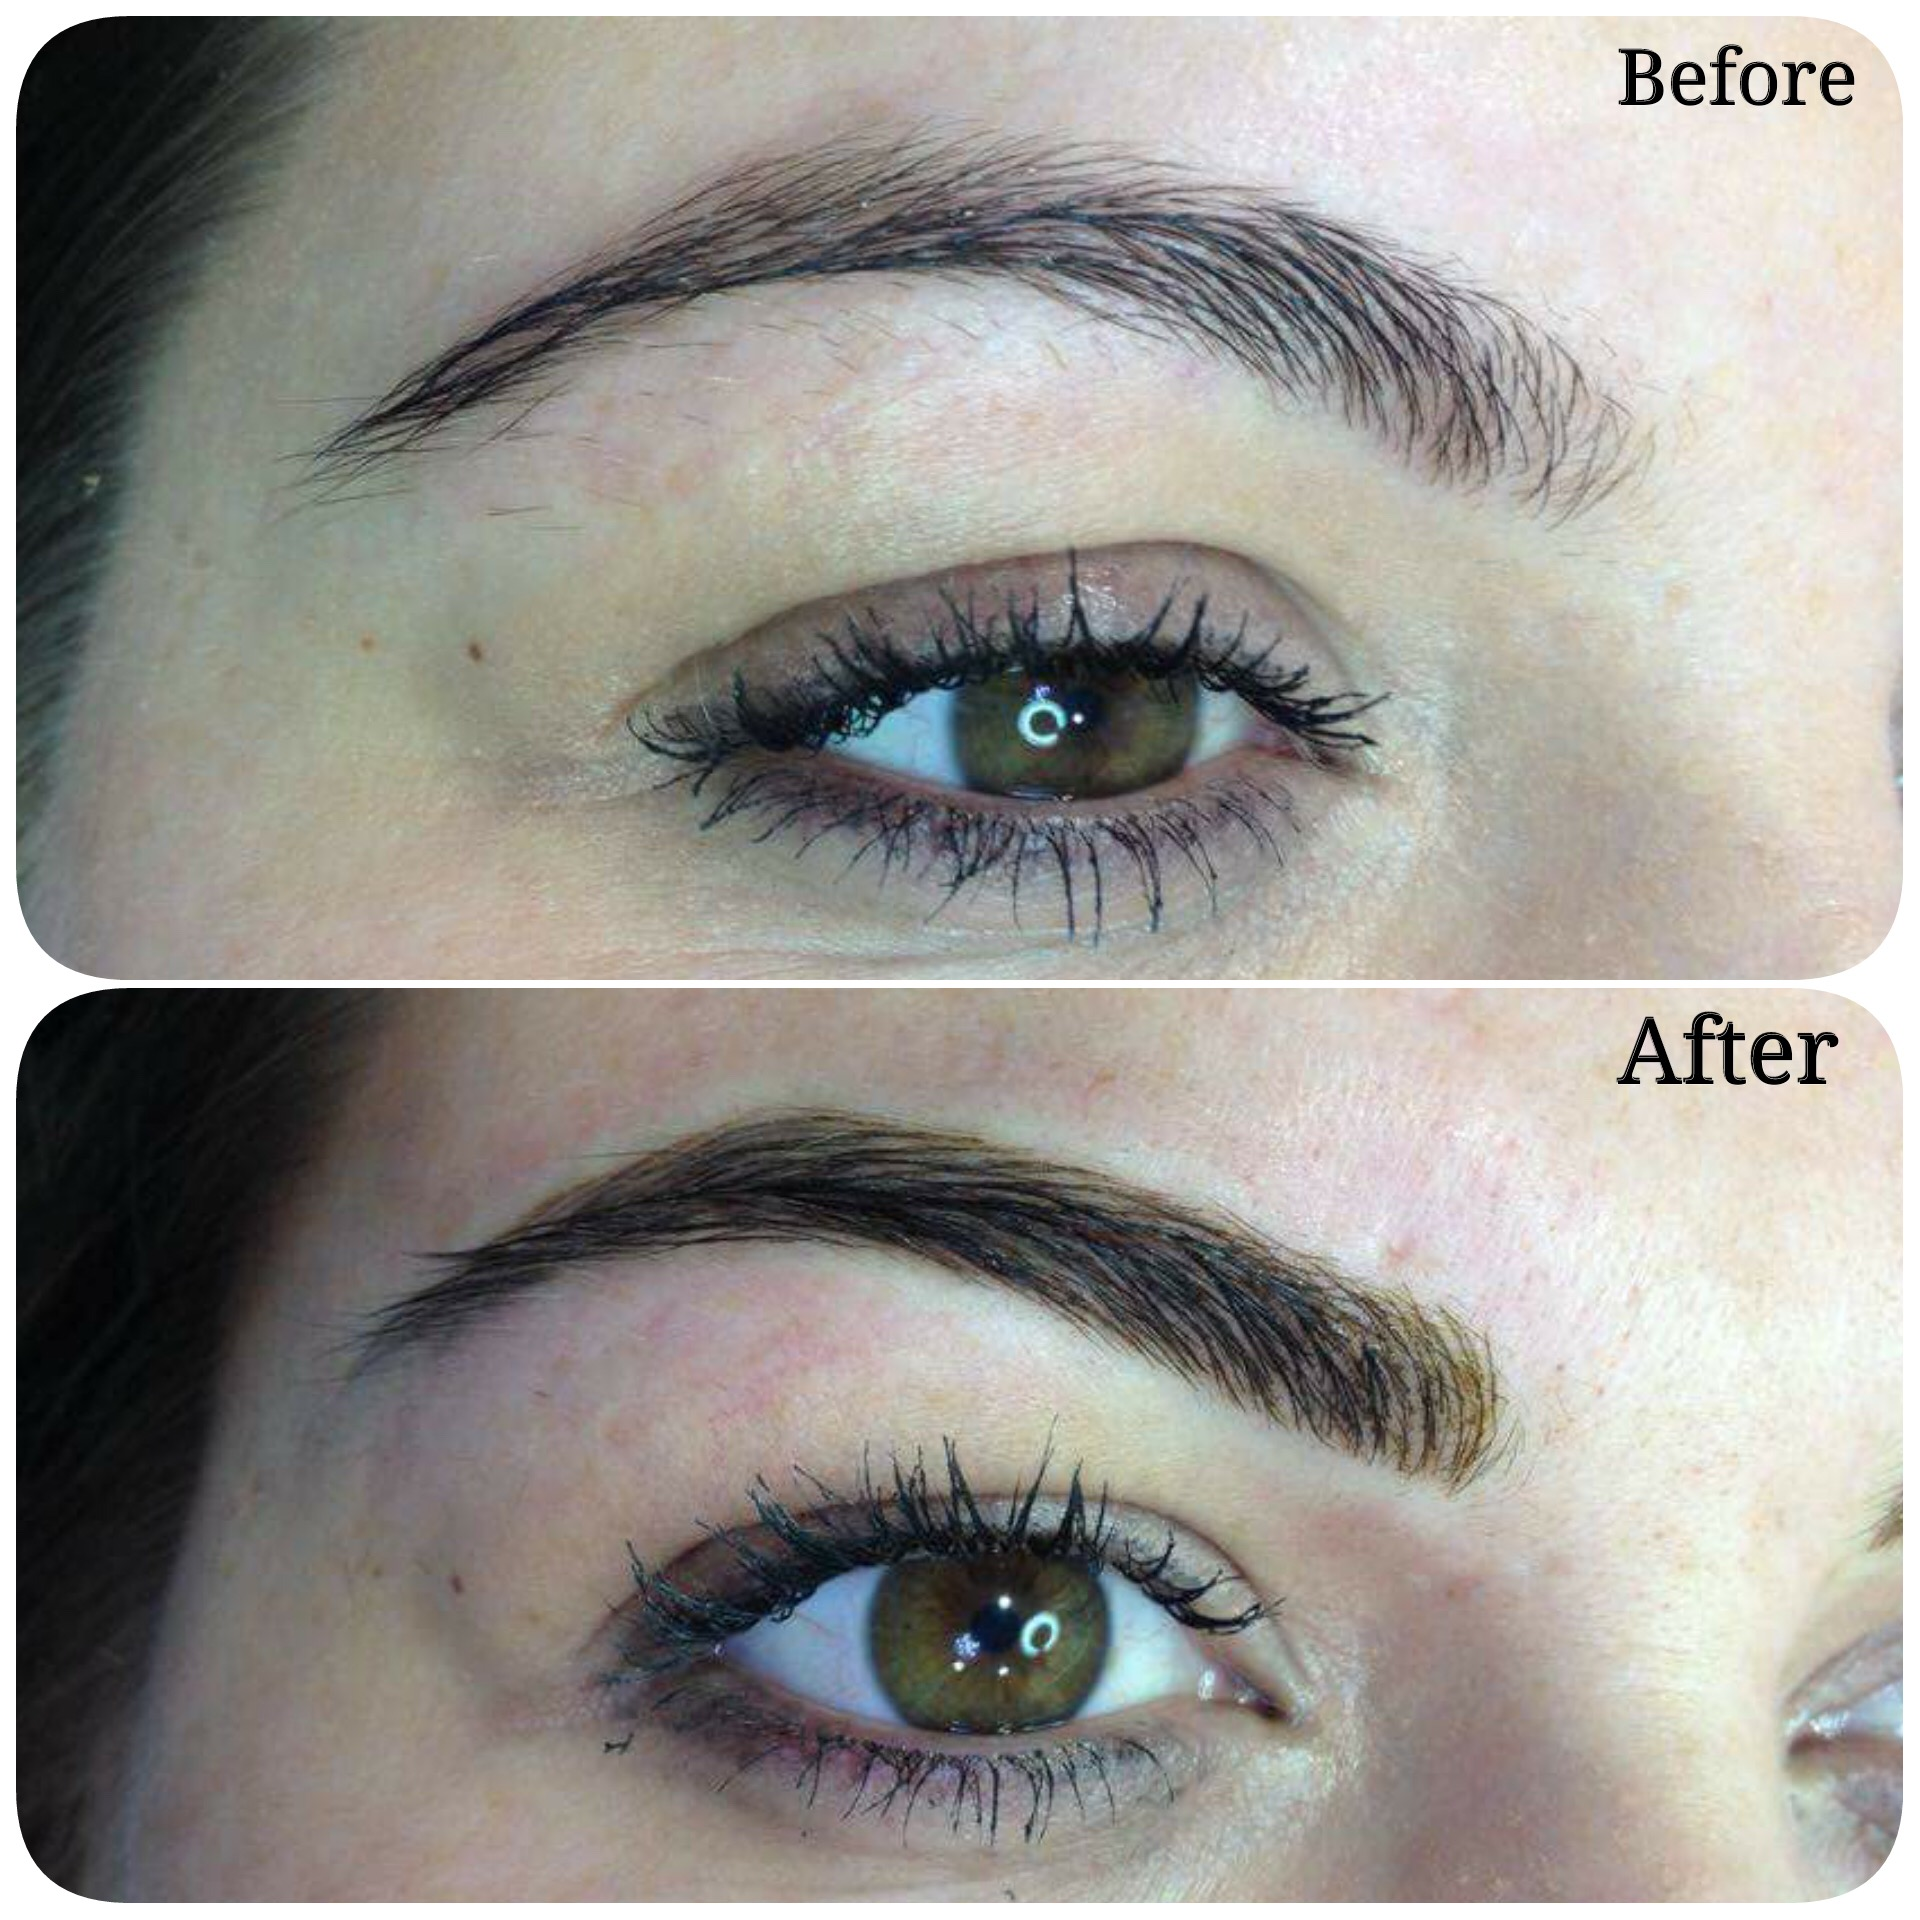 Boost Near Me >> Microblading Eyebrows Near Me - Shumailas London Beauty Salons